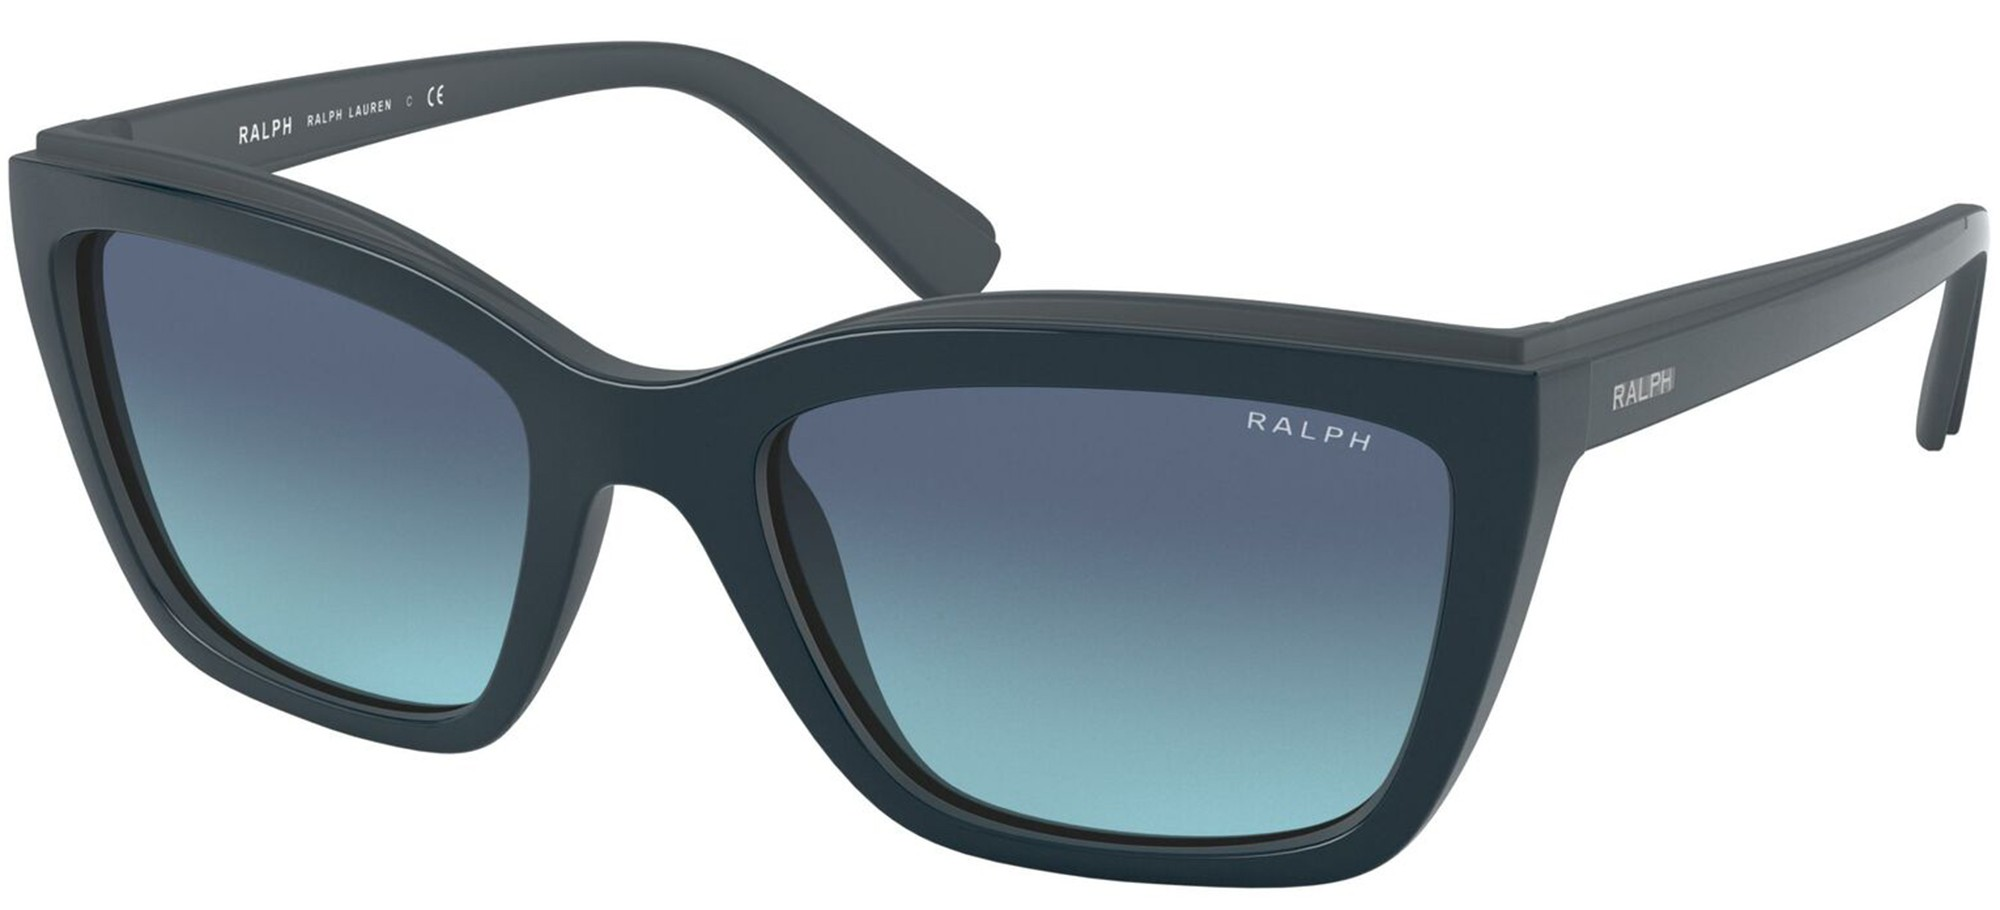 Ralph sunglasses RA 5263